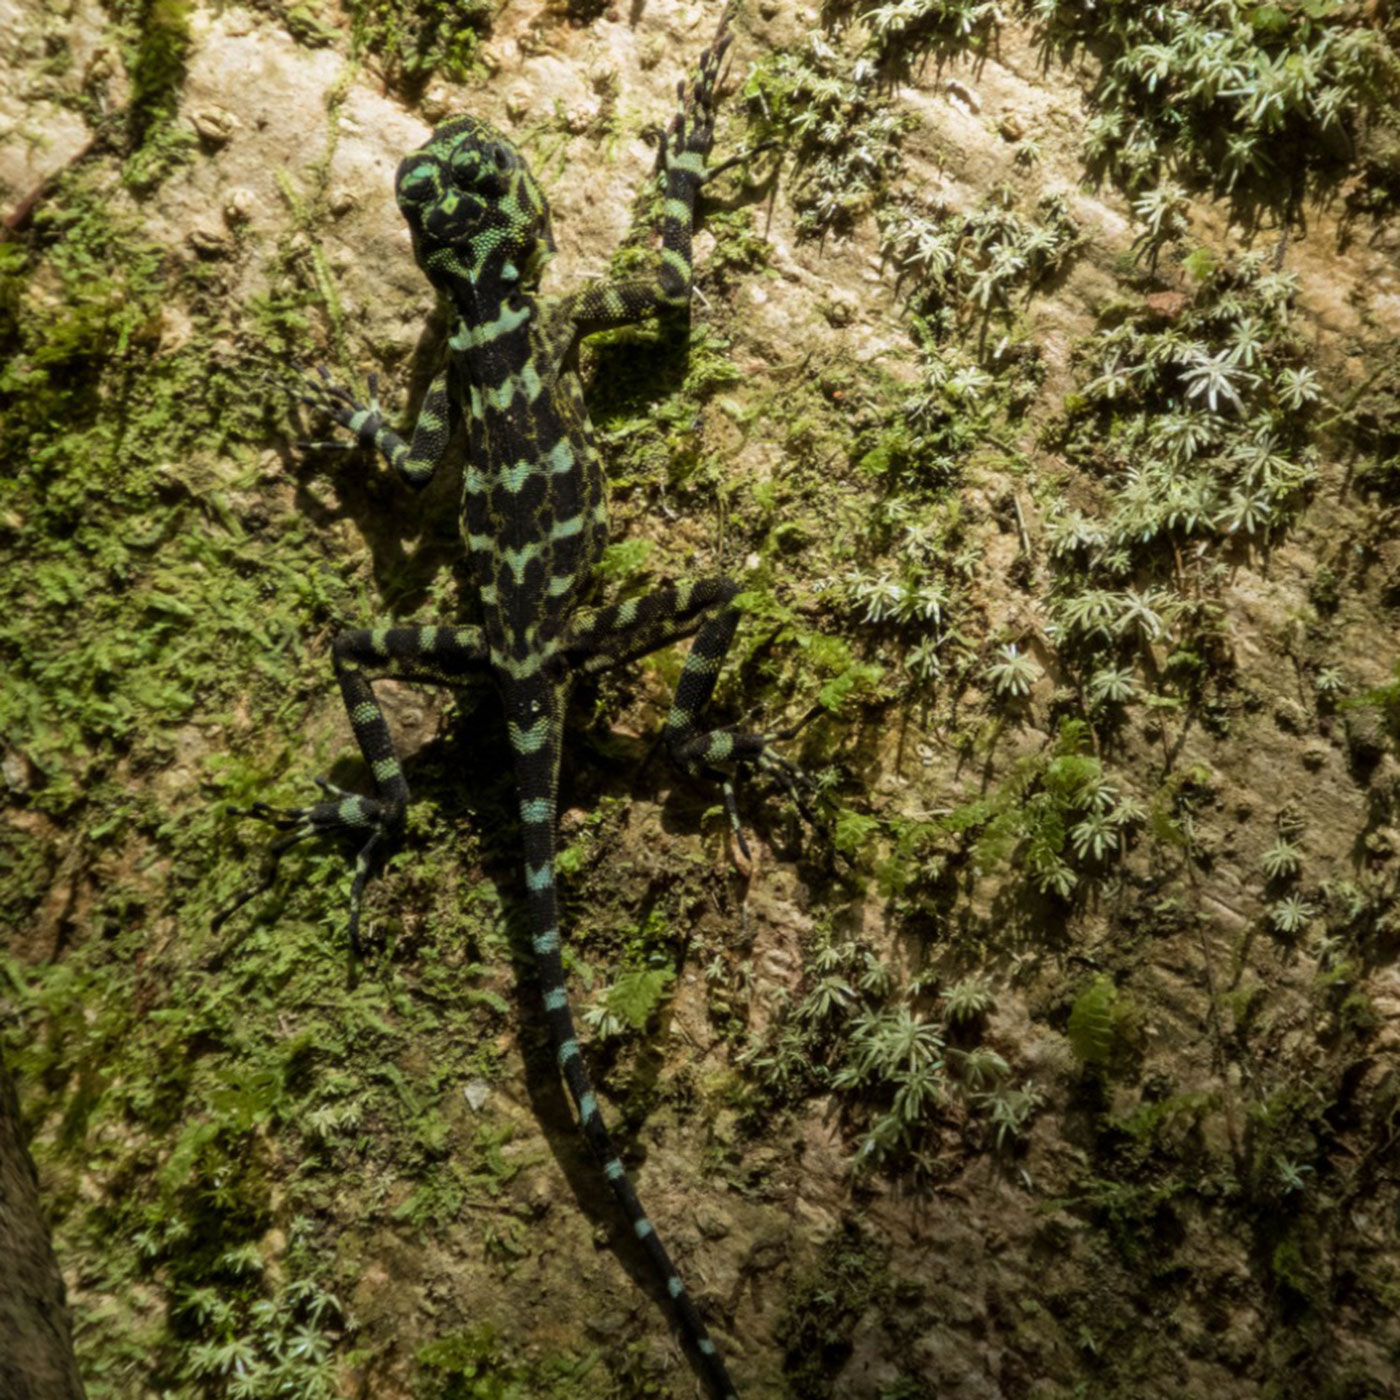 A small lizard climbs up the side of a tree, blending into the bark and moss